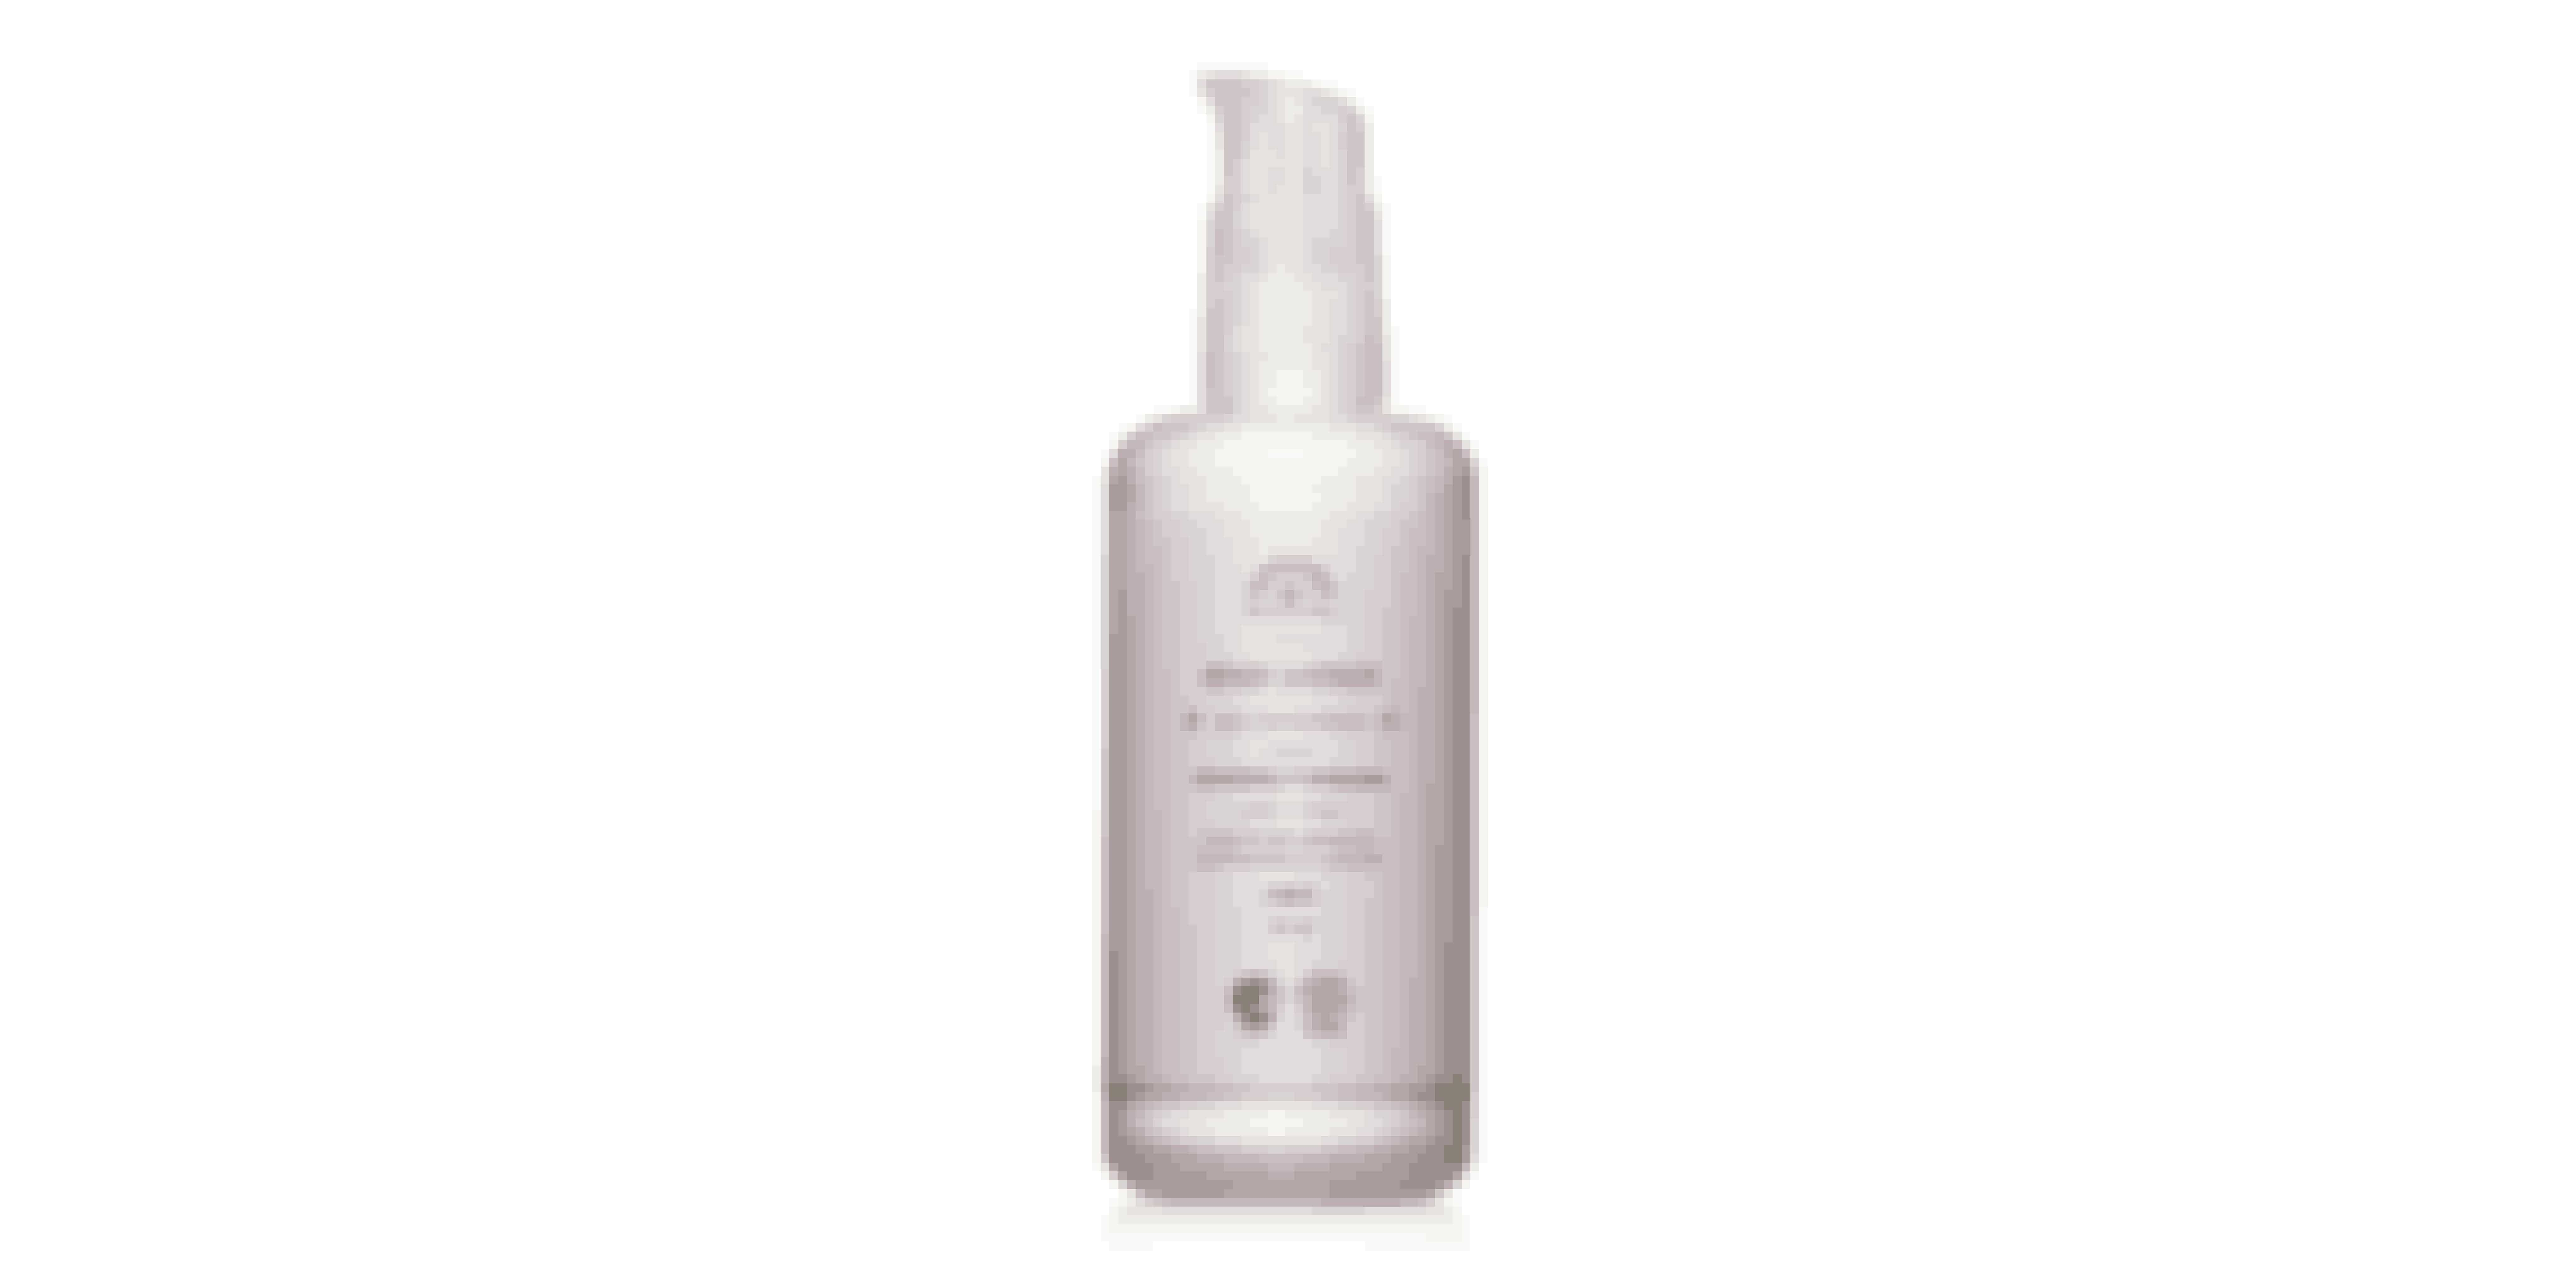 Acai Body Lotion, Rudolph Care, 200 ml, 395 kr.Kan købes online HER